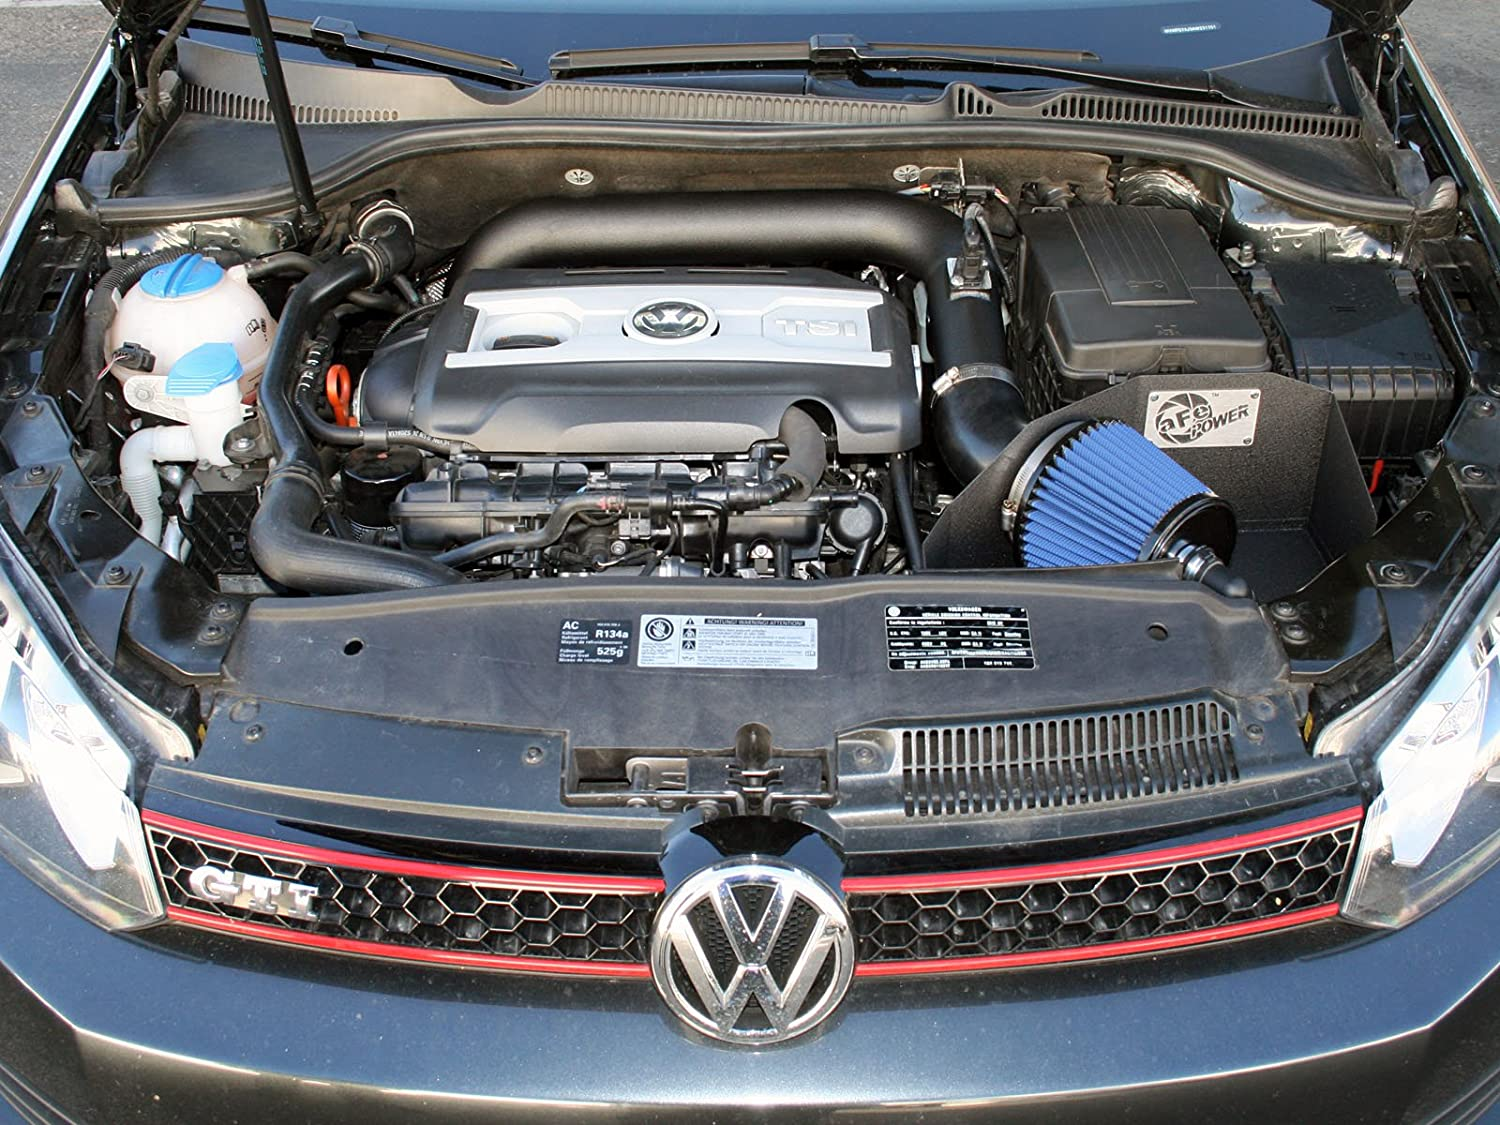 Afe Power Magnum Force 54 11892 Vw Gti Performance Is A Parts Diagram Listing Of The For Jetta Intake System Oiled 5 Layer Filter Automotive